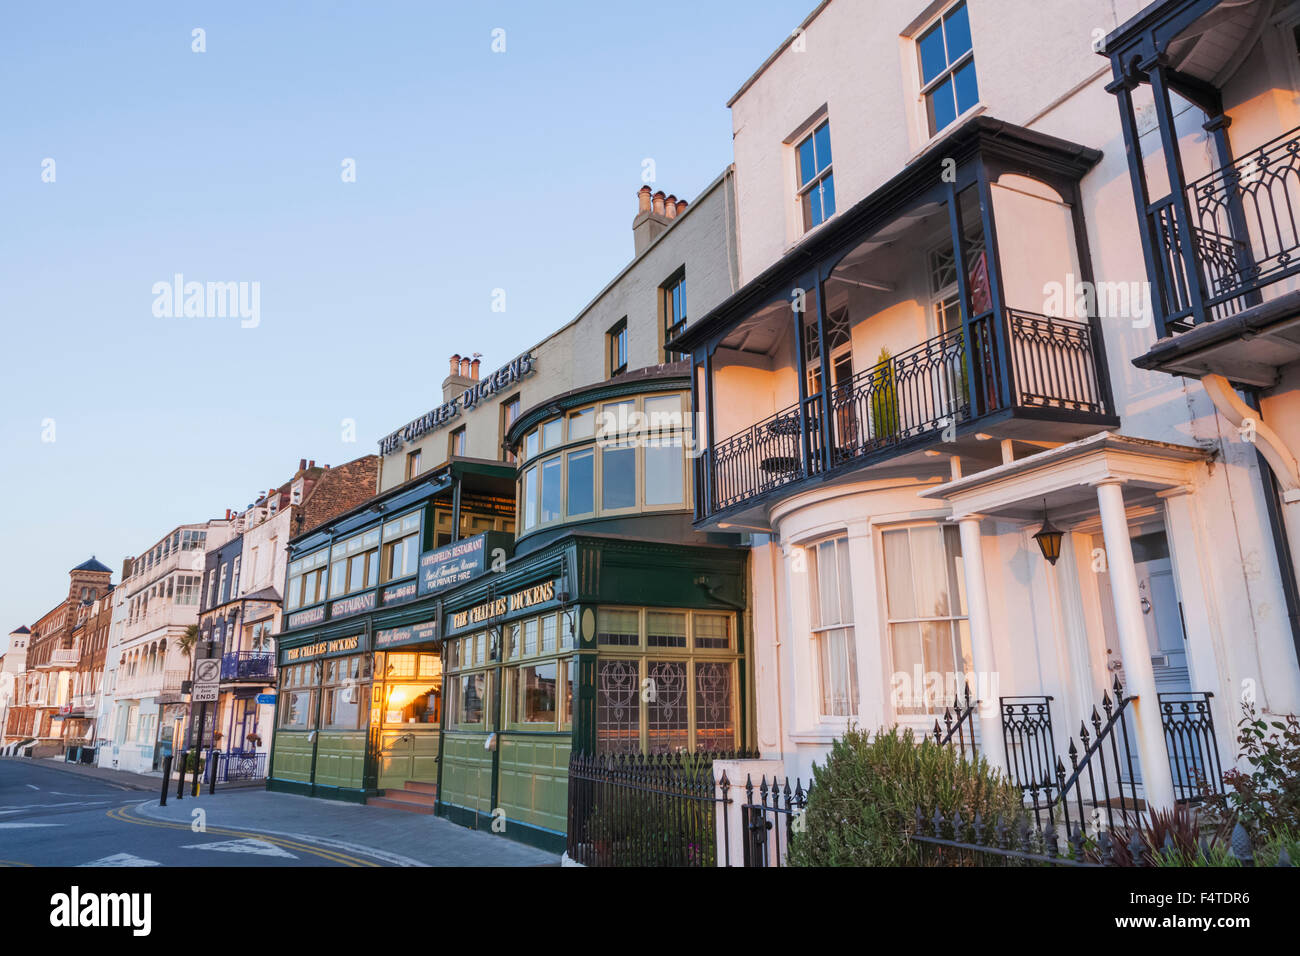 England, Kent, Broadstairs, Victoria Parade and The Charles Dickens Tavern - Stock Image